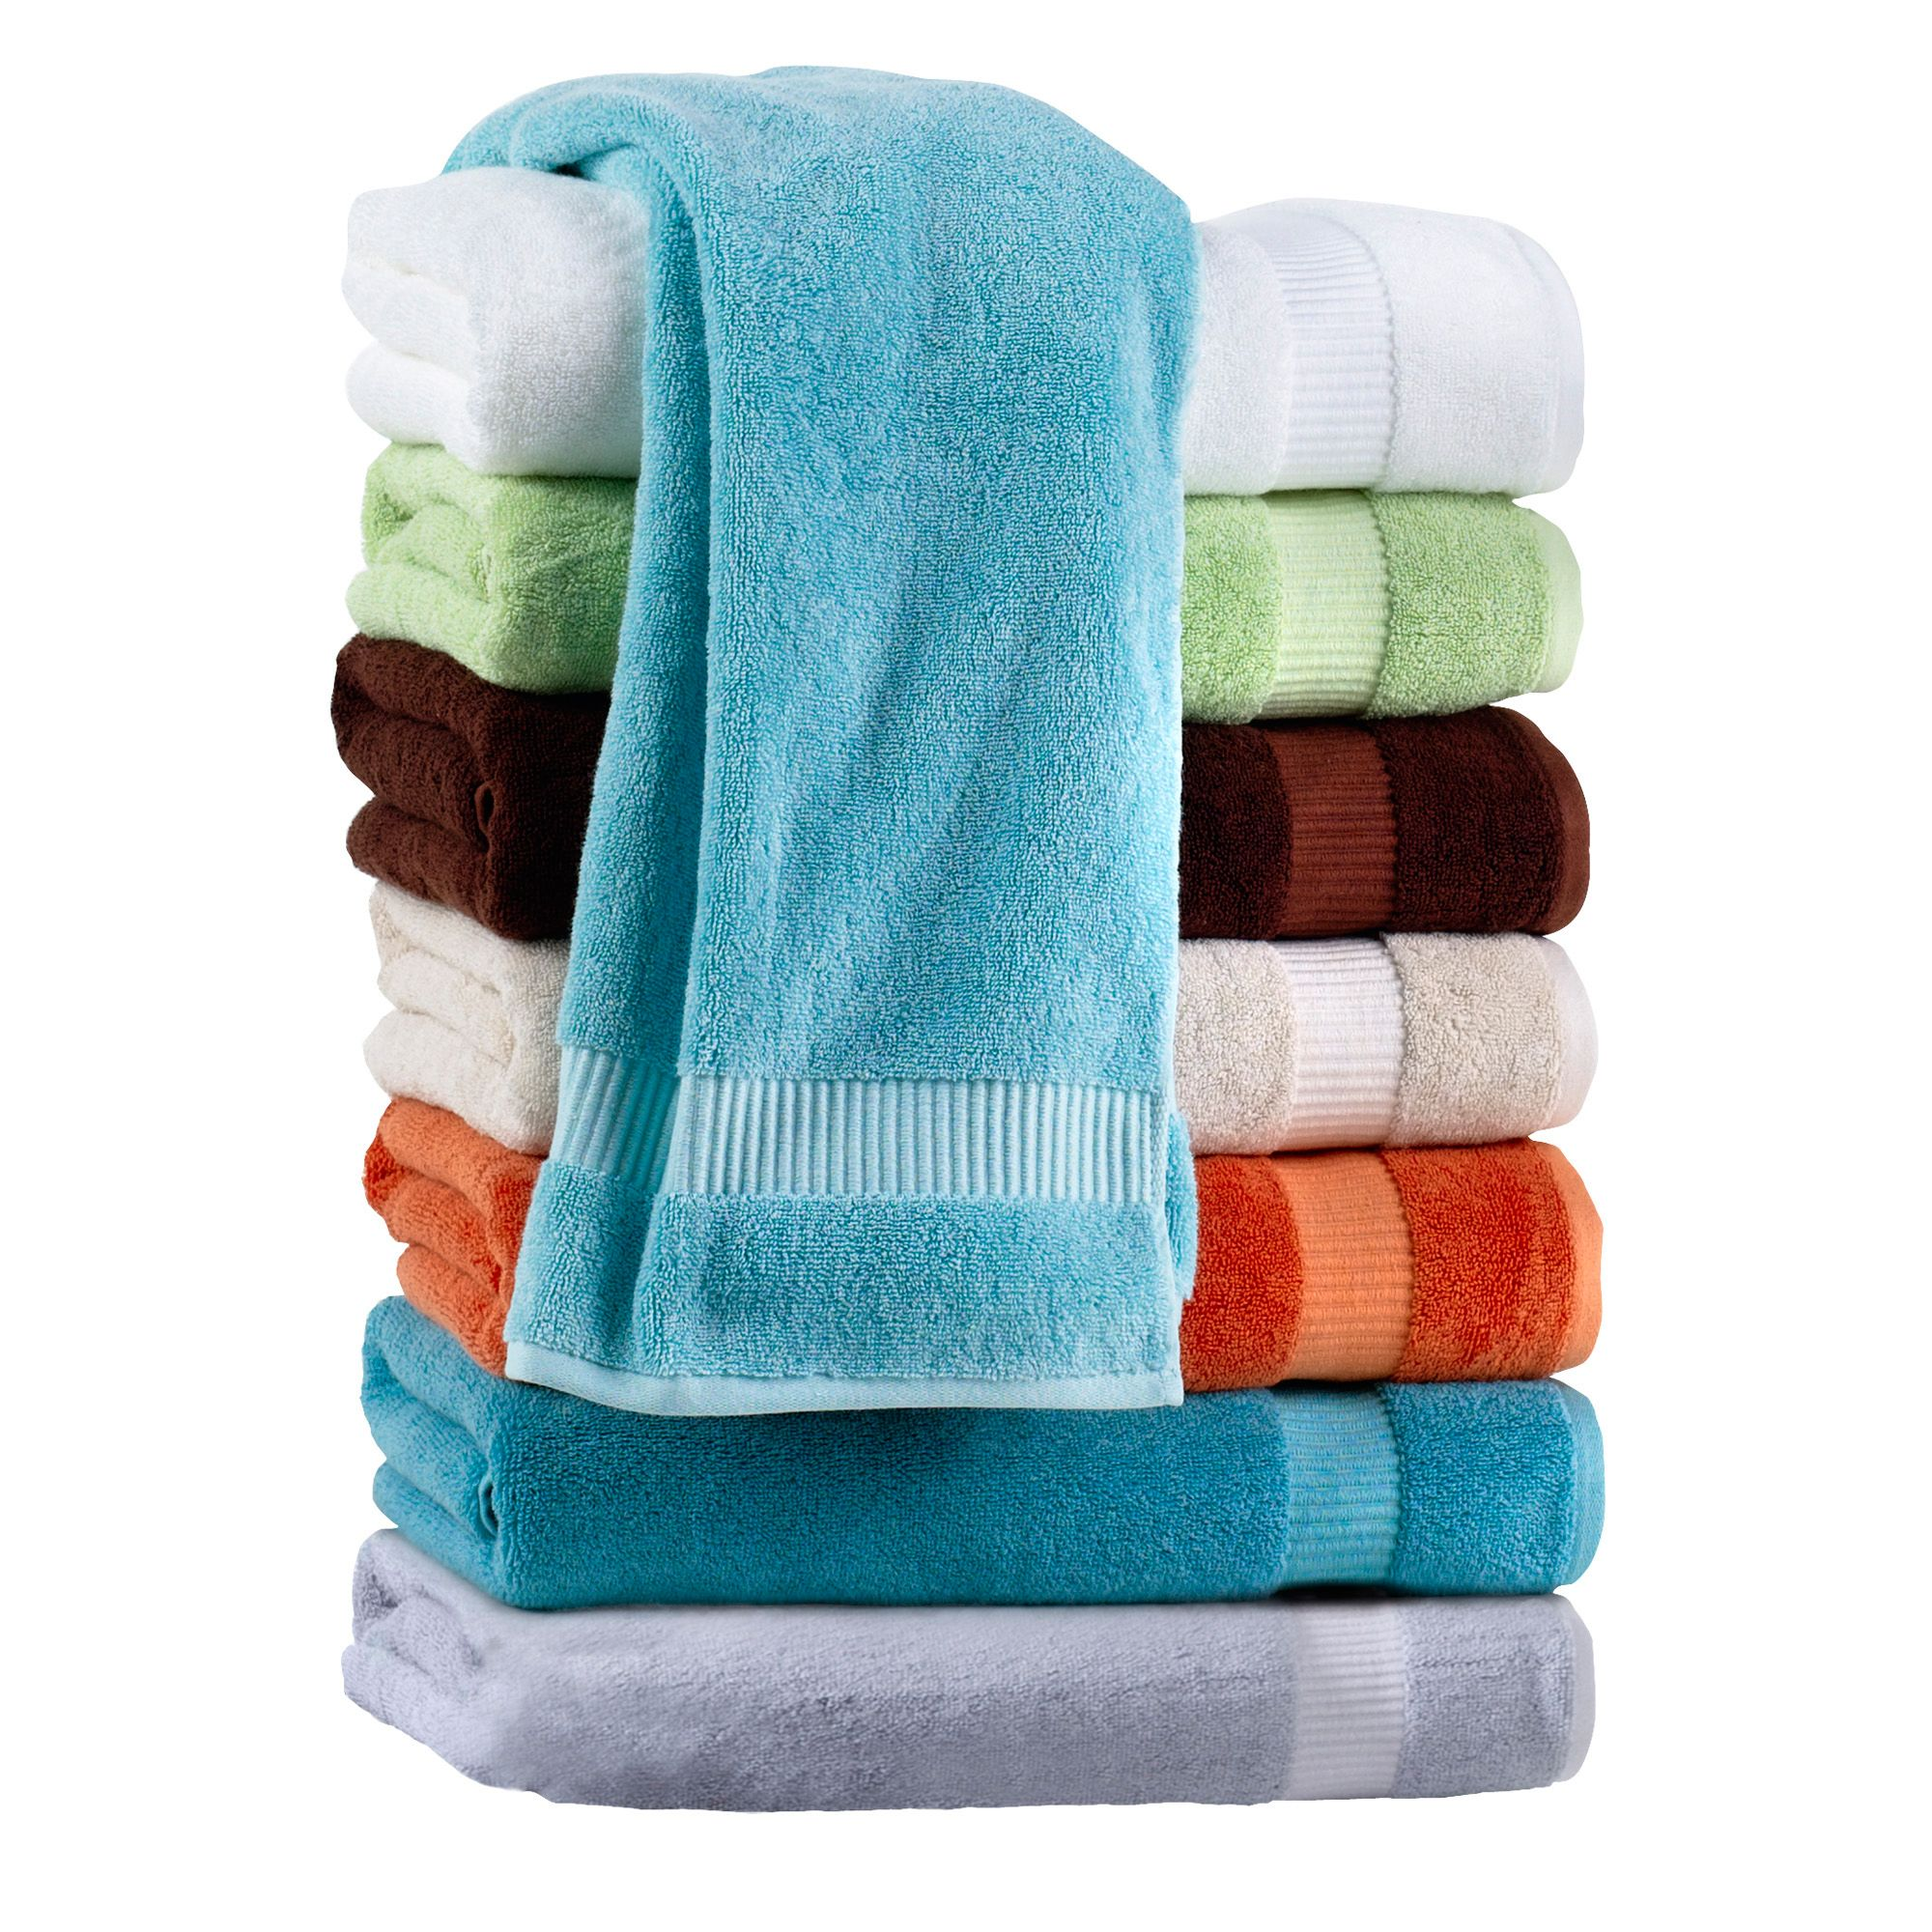 Absorbent Cotton Bath Towel